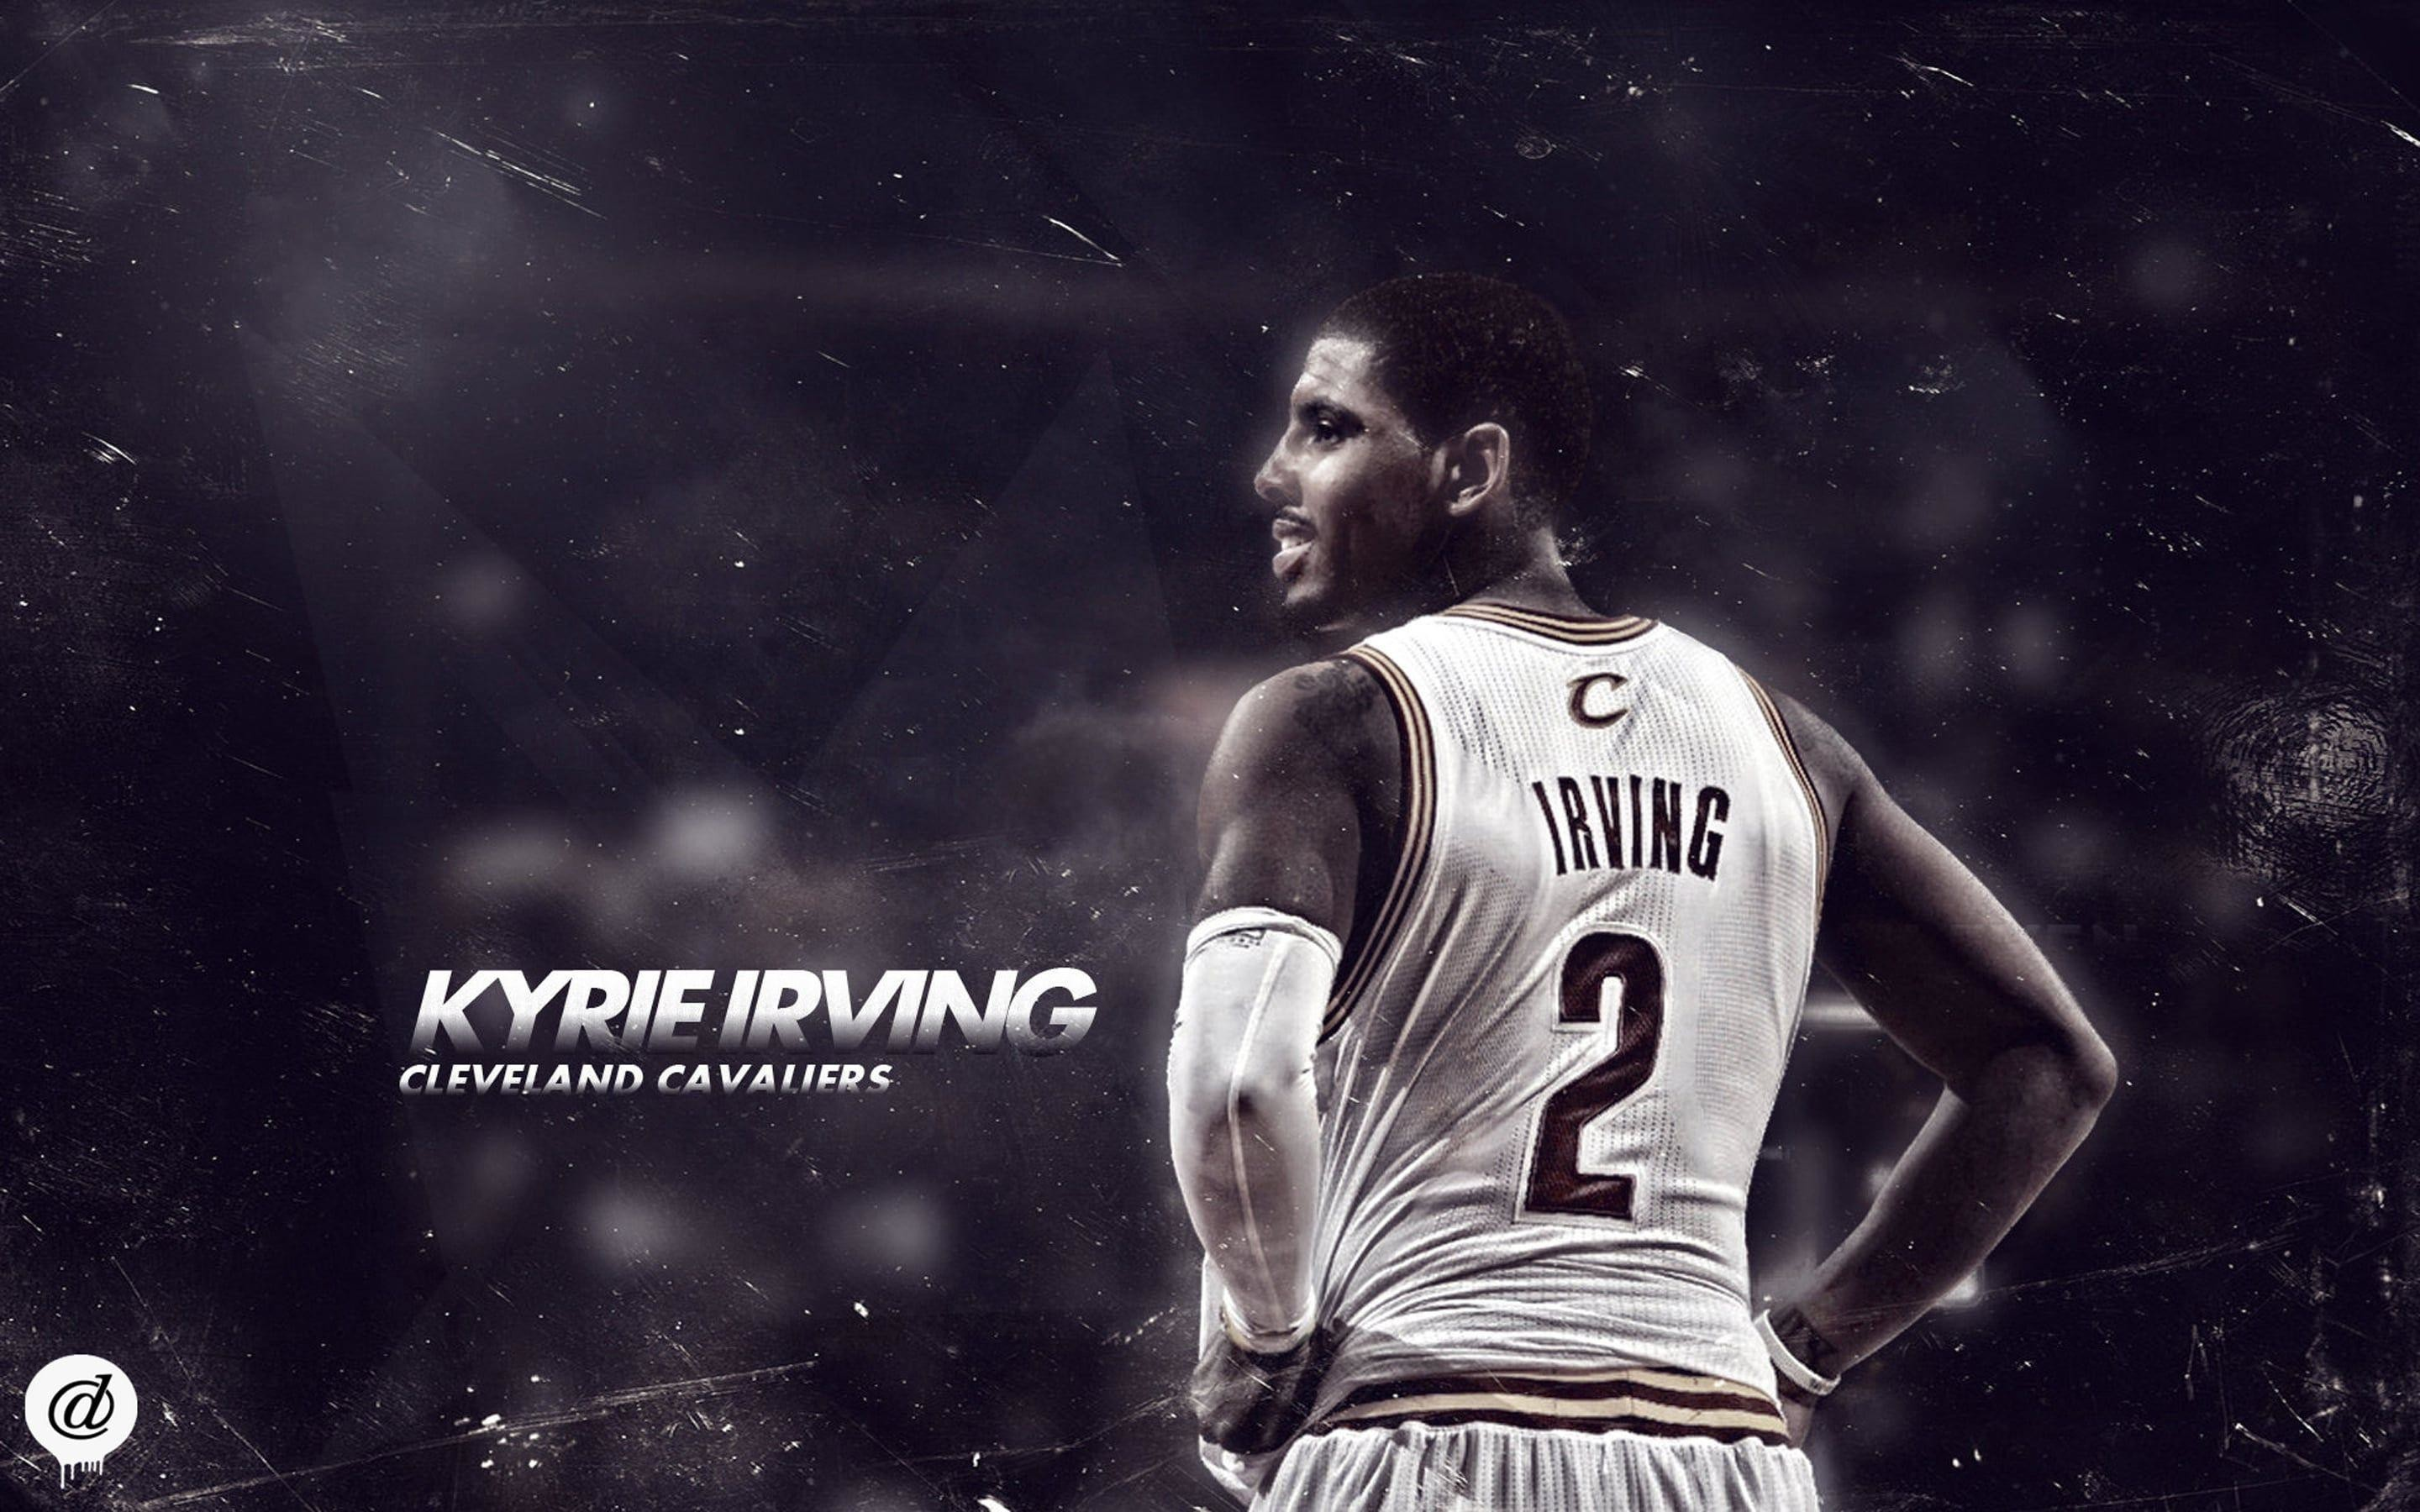 1080x1920 KYRIE IRVING WALLPAPER. Download